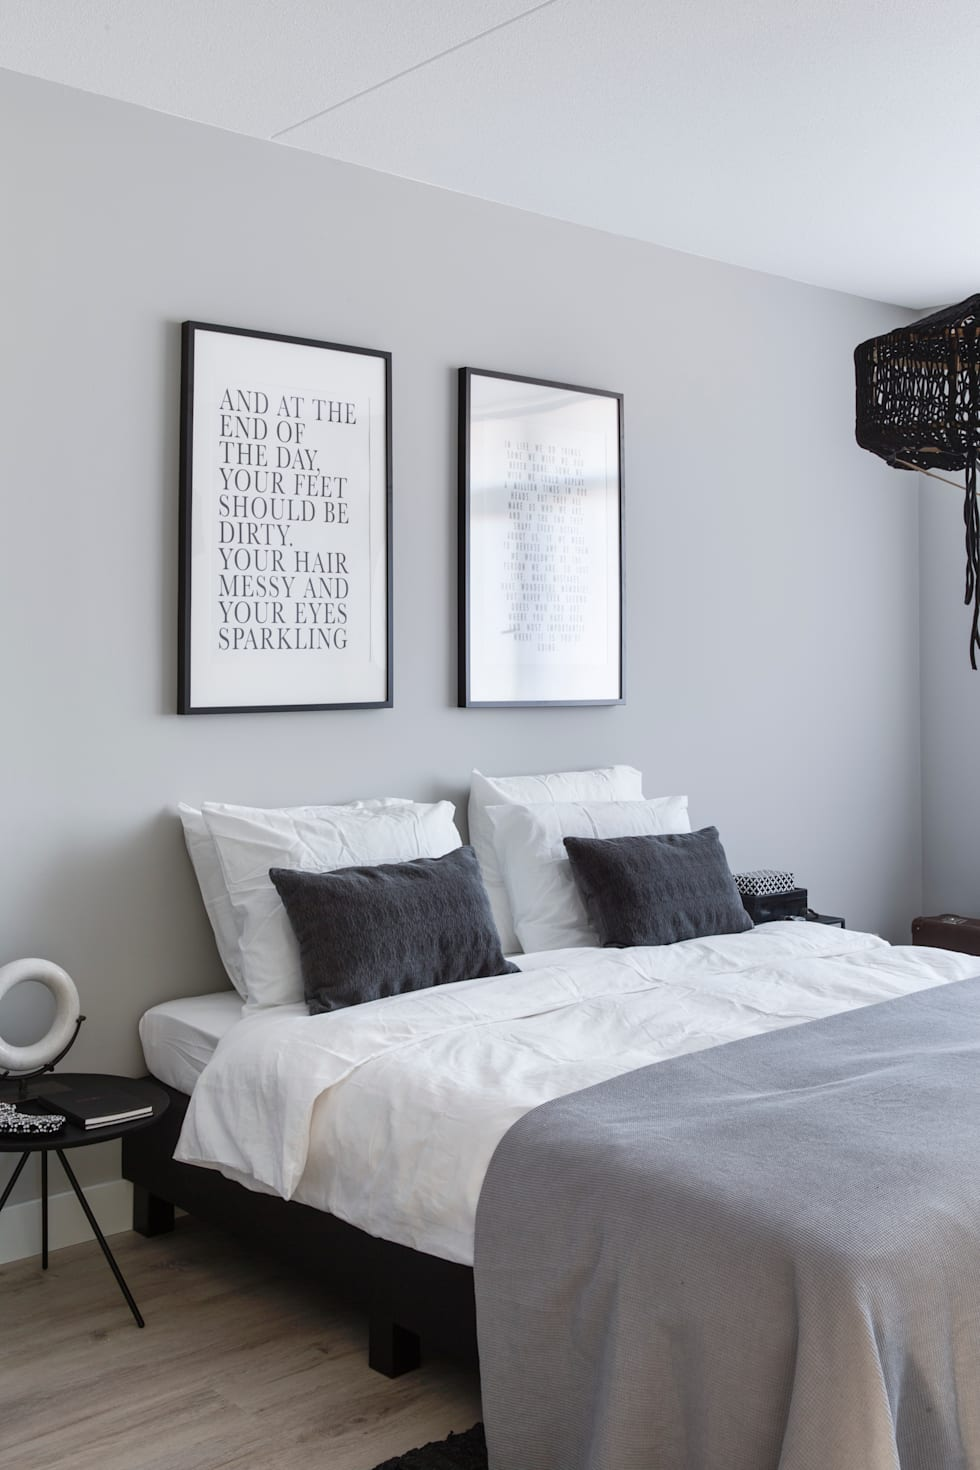 Tricks to keep your bedroom neat and tidy